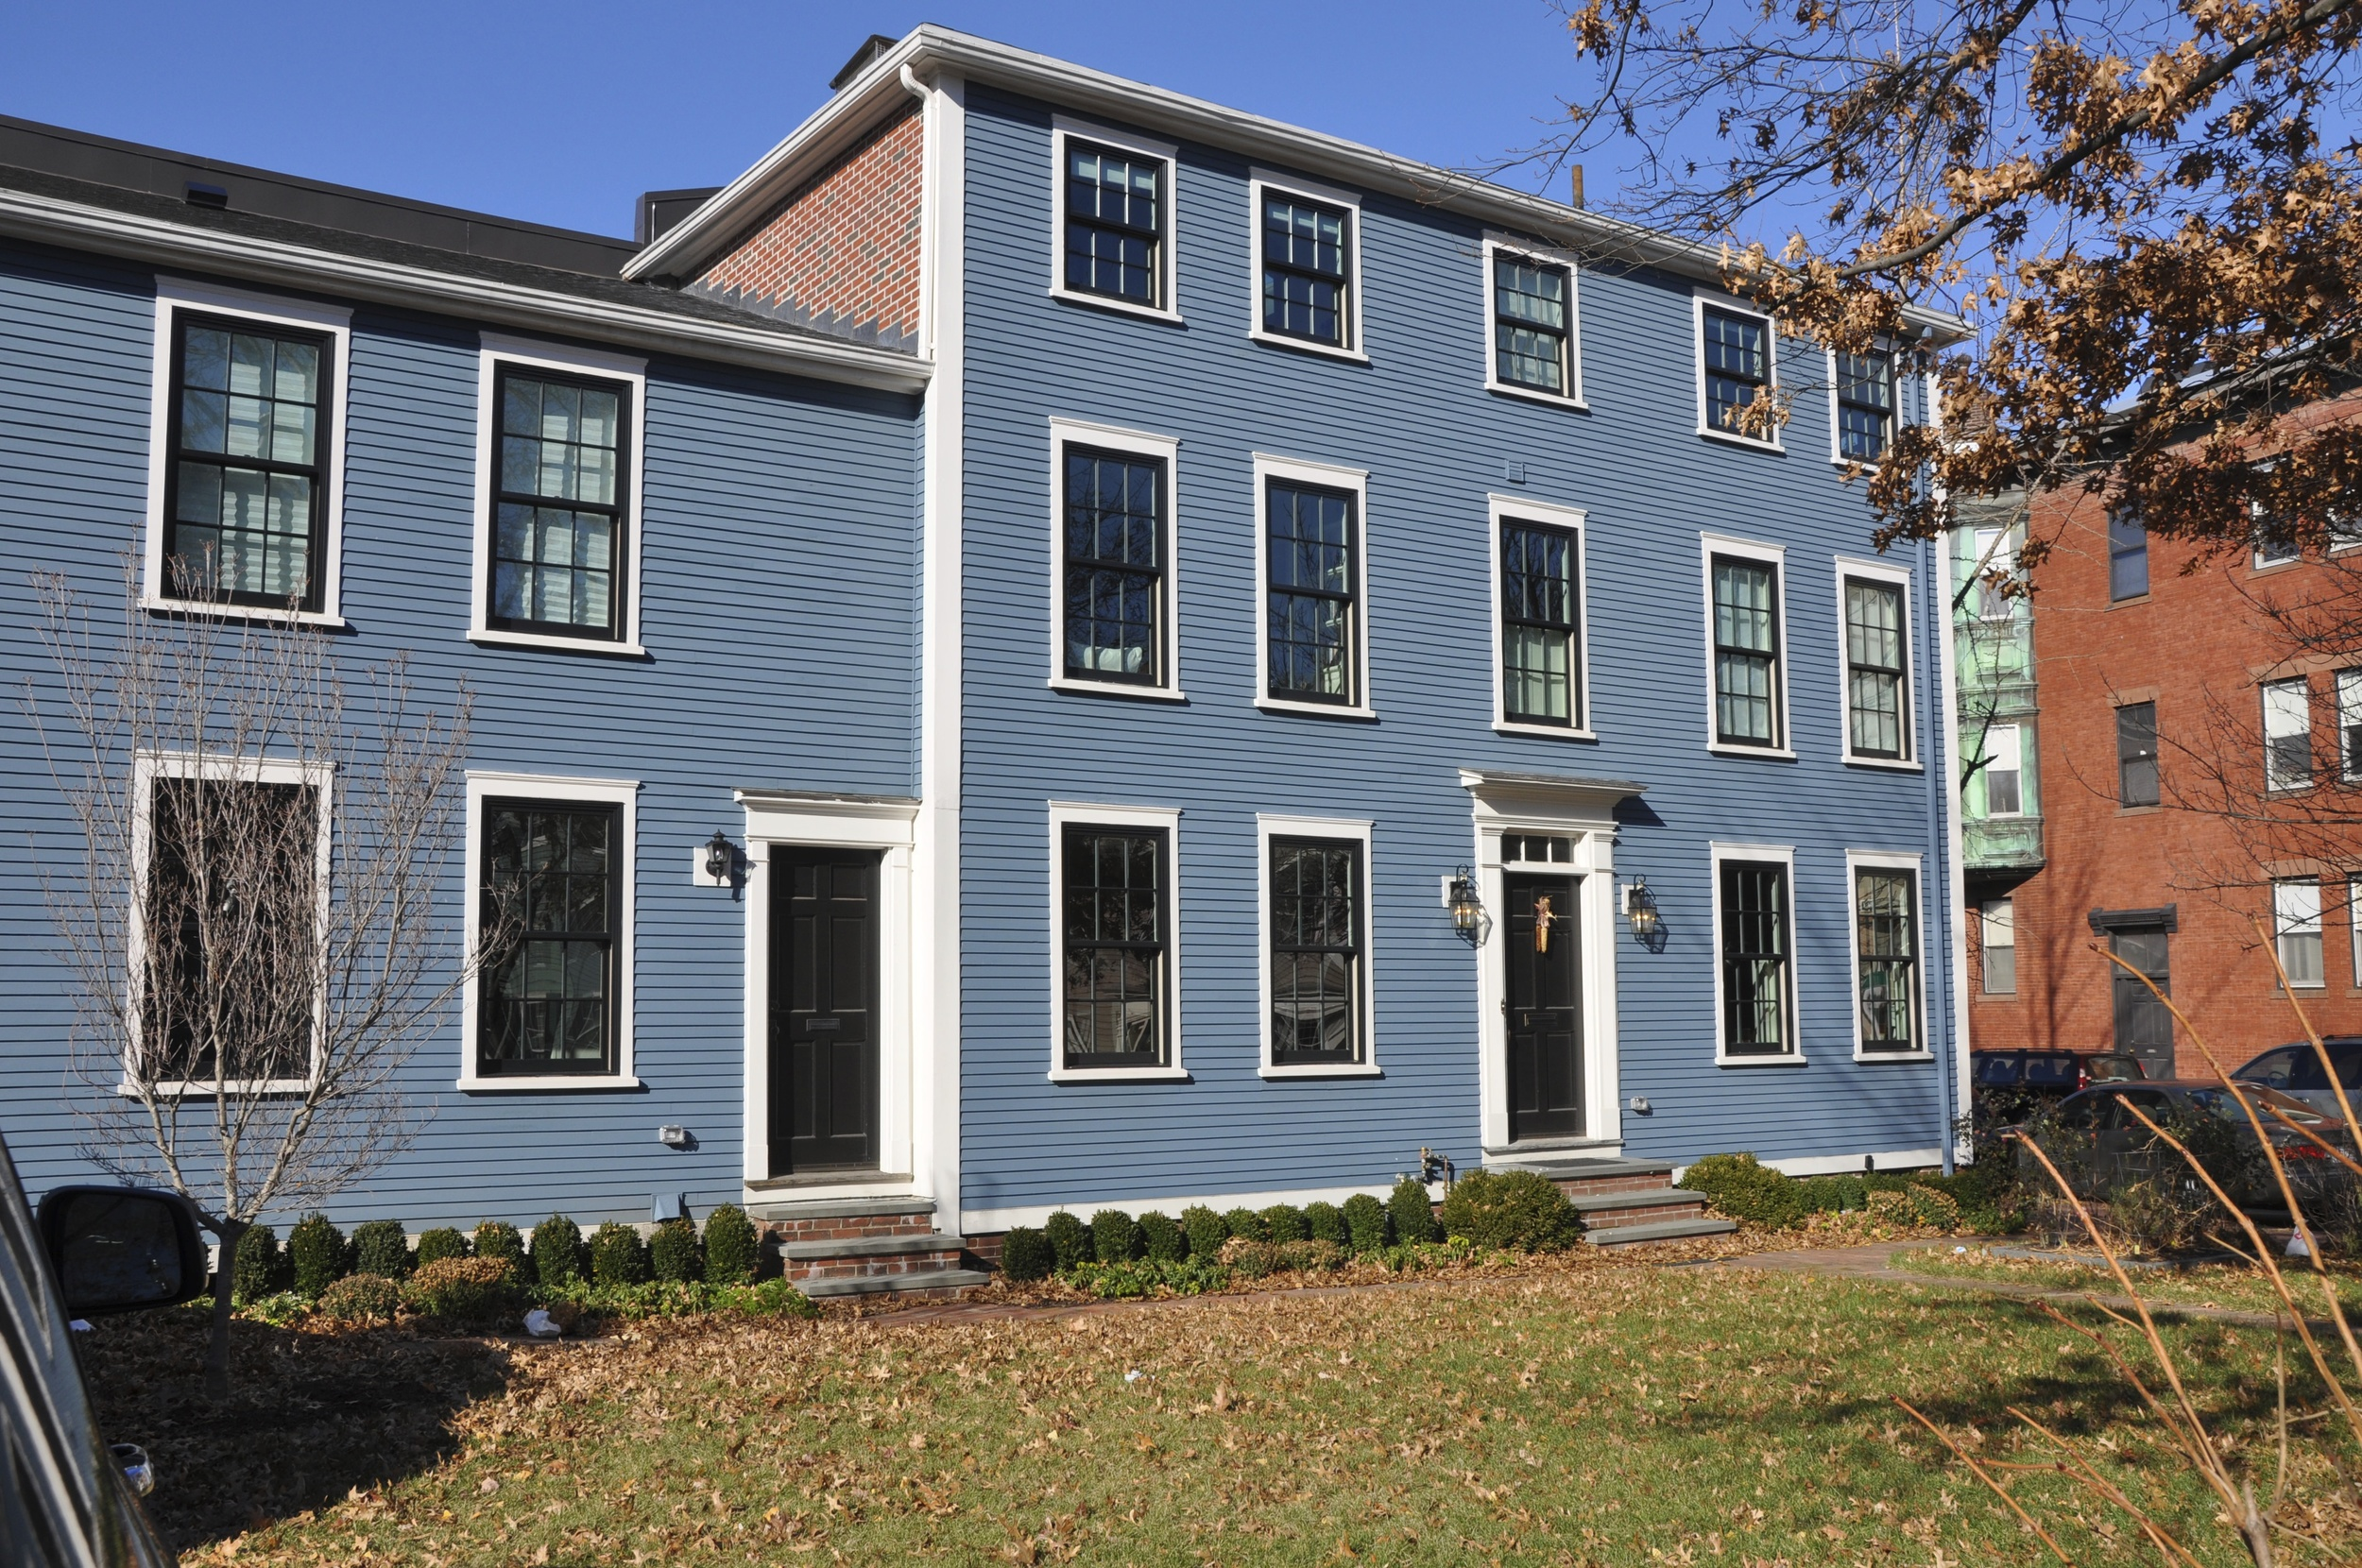 Renovation of historic residential site in Thompson Square. The two-family home was completely gutted, reducing all systems down to the bare structure. Floor systems repaired, second stairway removed, existing framing reinforced, floor plans reconfigured to form single 4-bedroom residence. Modern windows, utilities, and Icynene foam insulation contributed to energy efficiency. Finishes include custom wainscoting, pilasters, built-in cabinetry, and historic trim profiles throughout. With Justin Kelly Contracting.